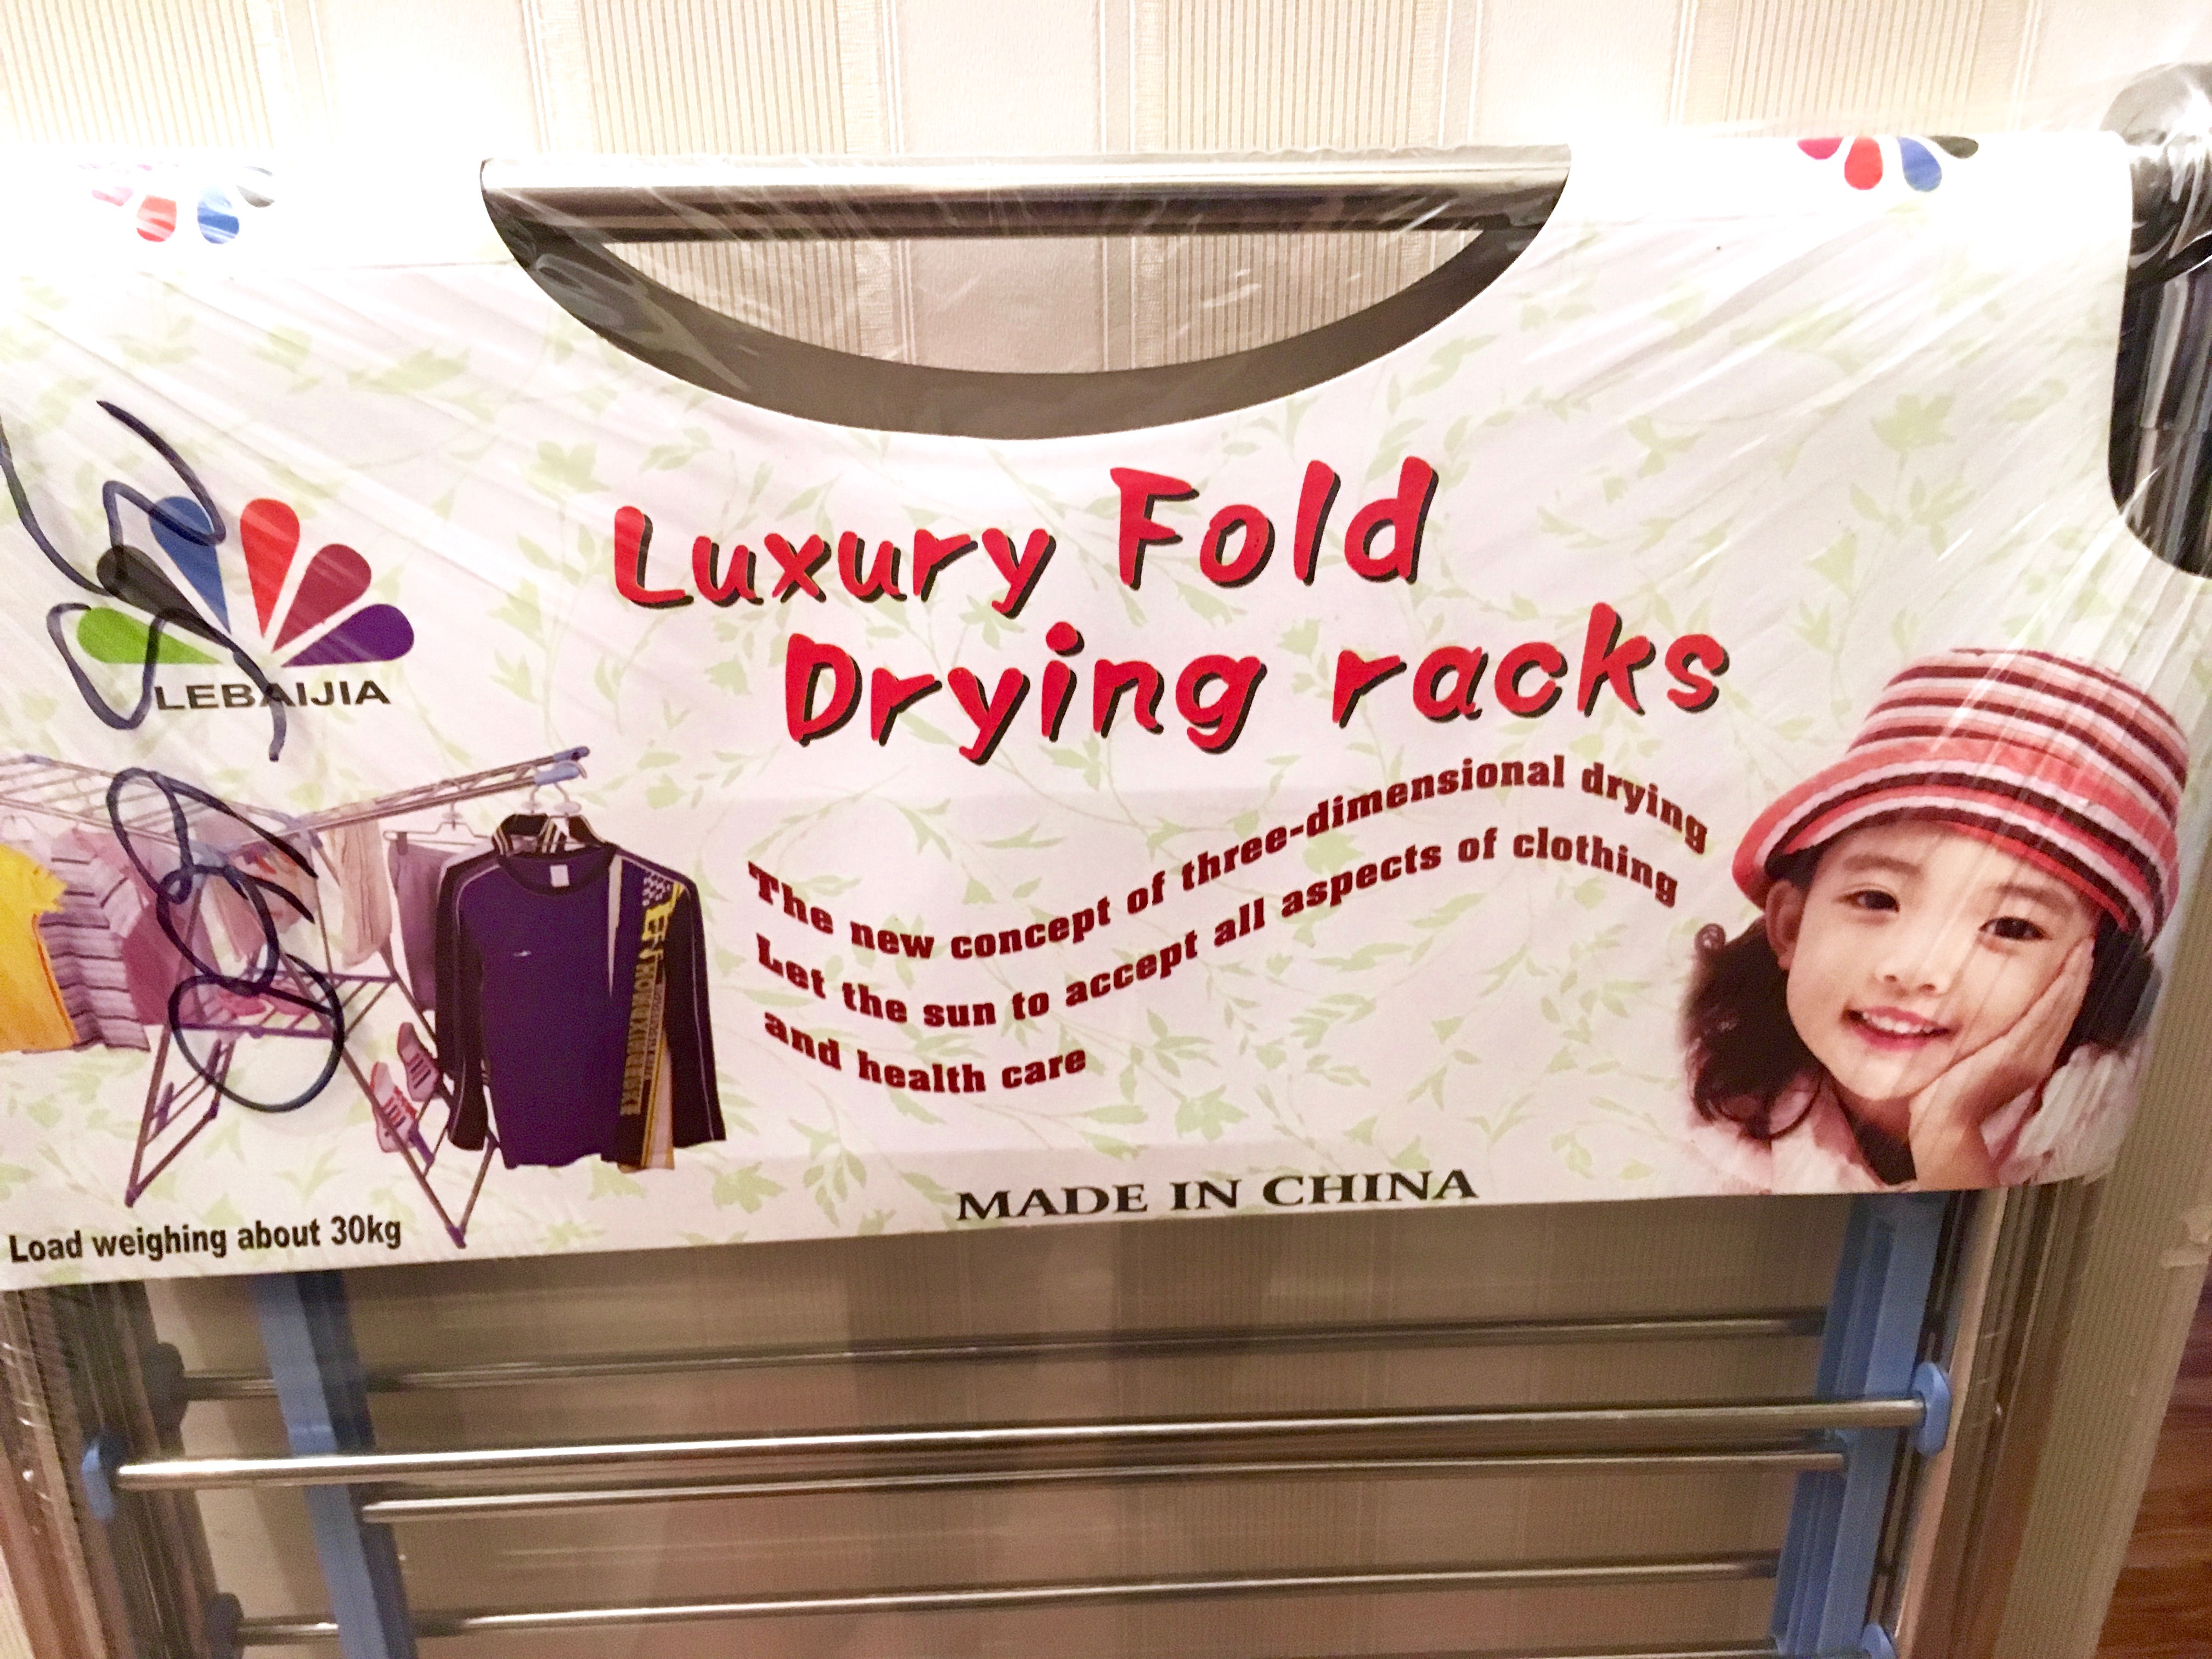 The new concept of 3-D drying!